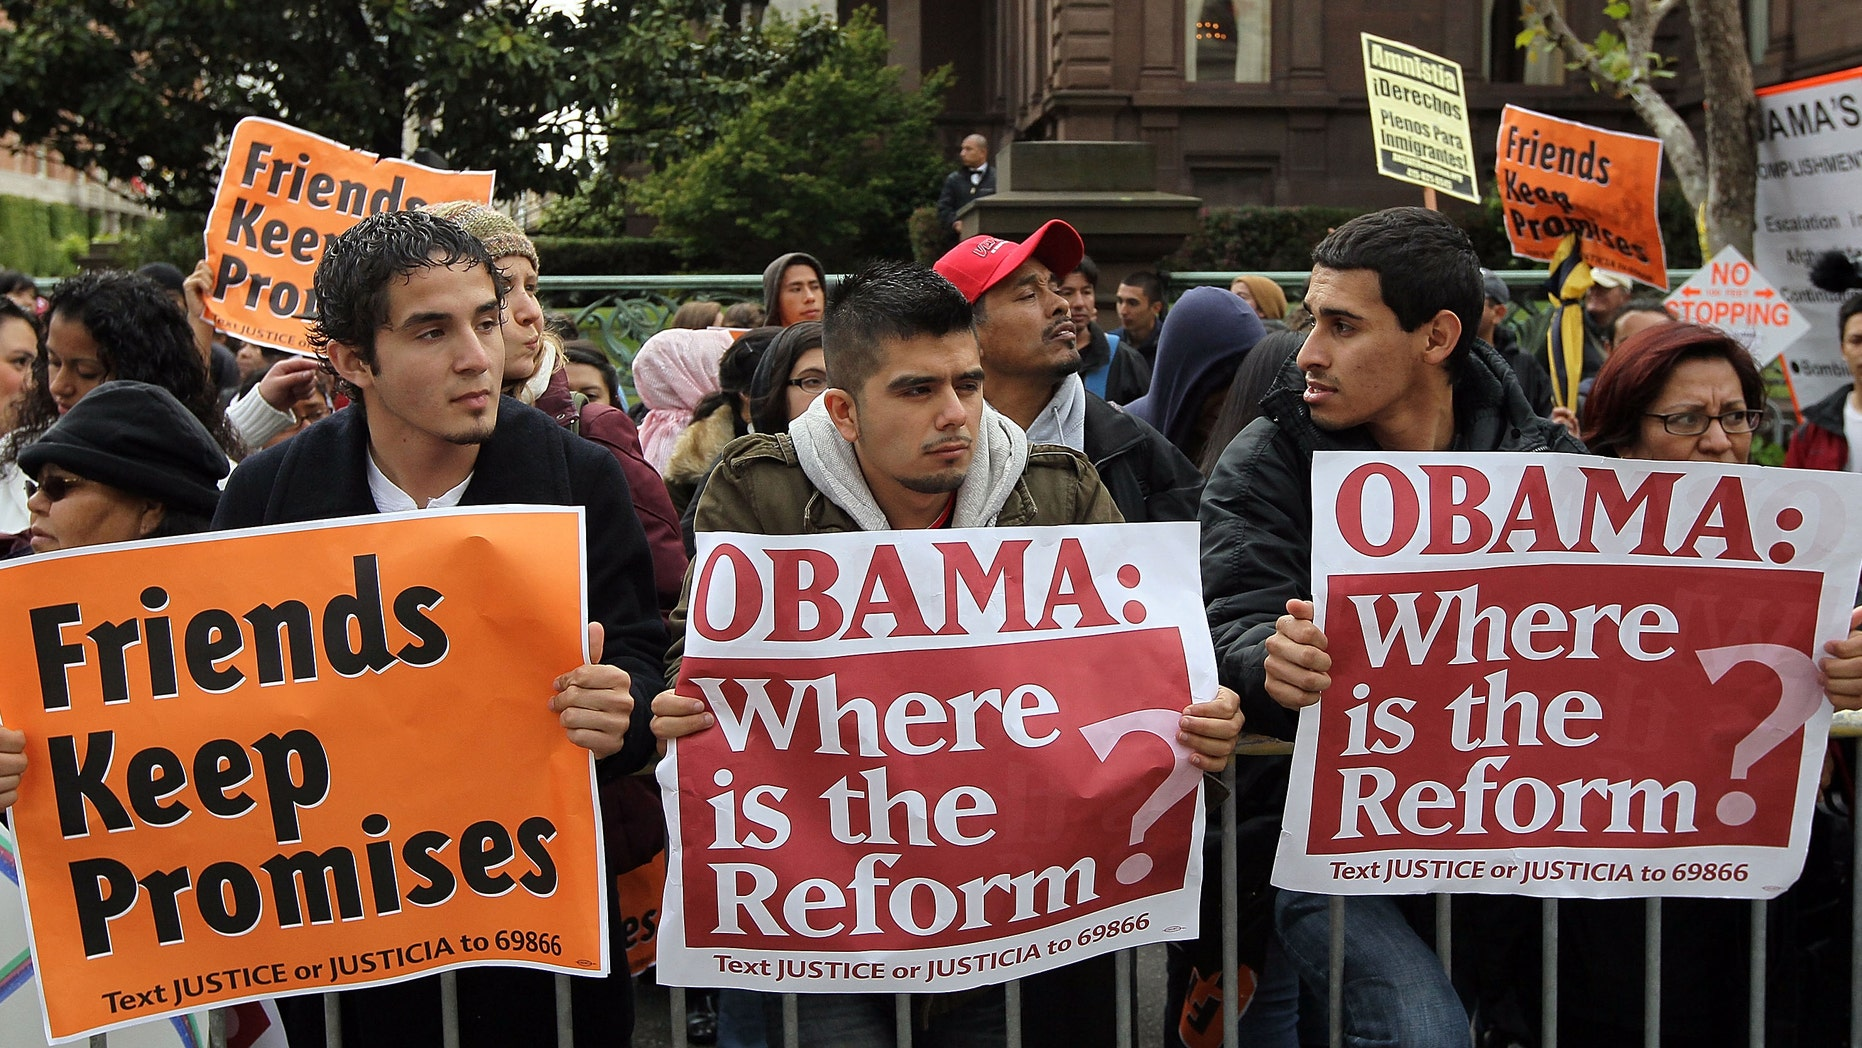 SAN FRANCISCO - MAY 25:  A group carries signs asking for immigration reform as they protest outside of the Fairmont Hotel before U.S. President Barack Obama arrives for a fundraiser May 25, 2010 in San Francisco, California. Hundreds of protestors from different political groups staged the demonstration at a campaign fundraiser for U.S. Sen. Barbara Boxer (D-CA).  (Photo by Justin Sullivan/Getty Images)